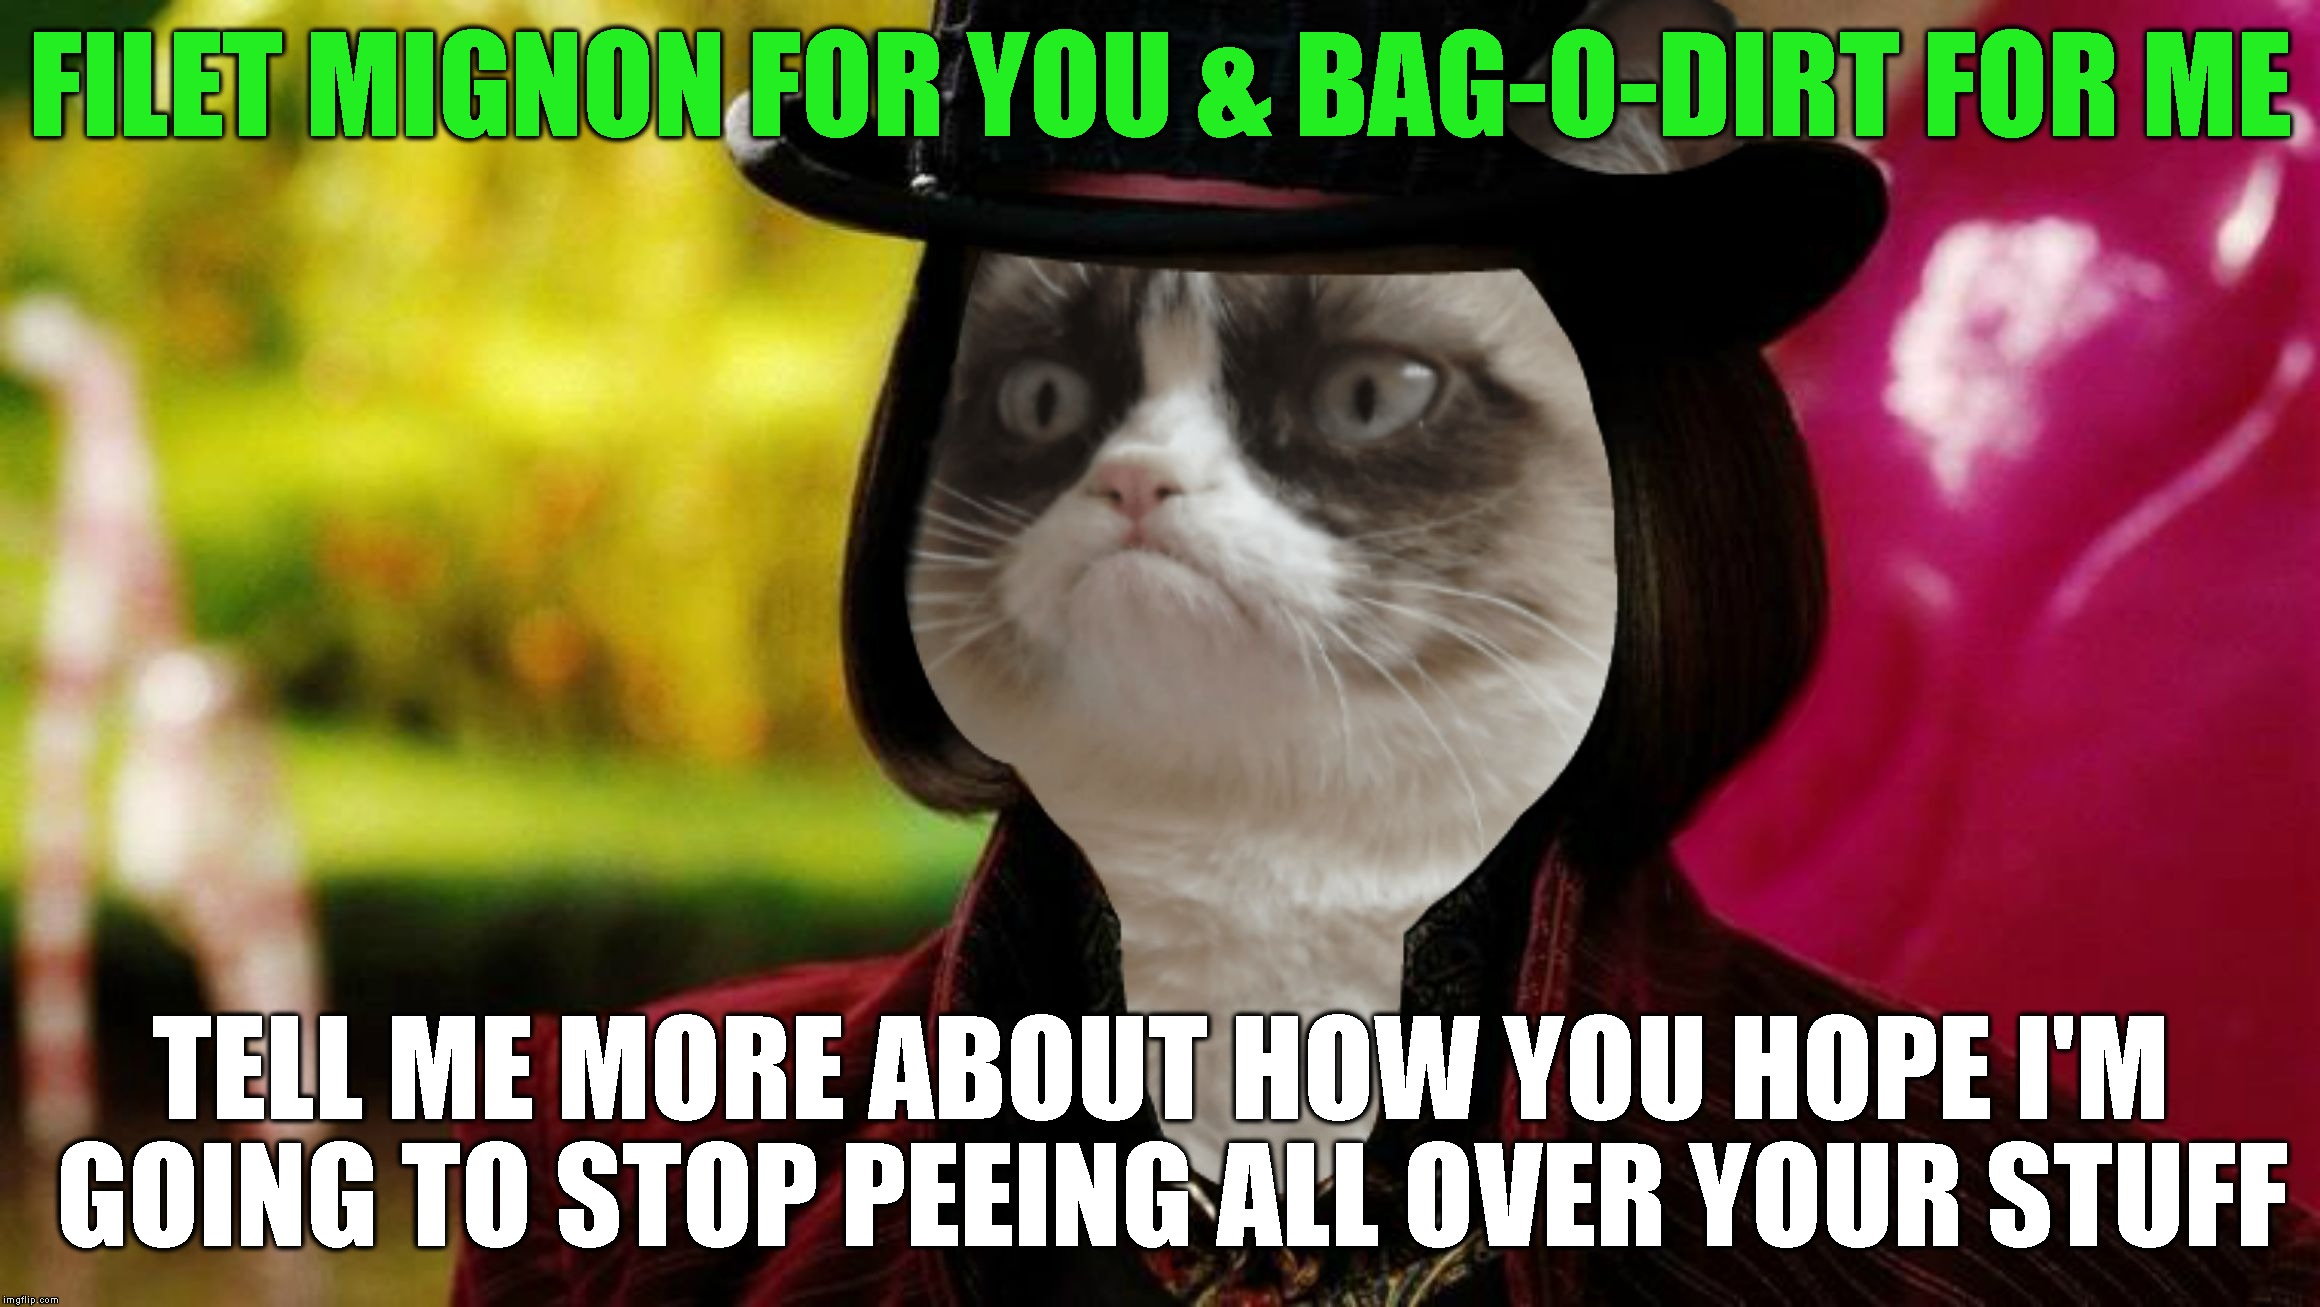 Evil-The-Cat | FILET MIGNON FOR YOU & BAG-O-DIRT FOR ME TELL ME MORE ABOUT HOW YOU HOPE I'M GOING TO STOP PEEING ALL OVER YOUR STUFF | image tagged in wonka grumpy cat,grumpy cat,creepy condescending wonka,willy wonka,jealousy,revenge | made w/ Imgflip meme maker